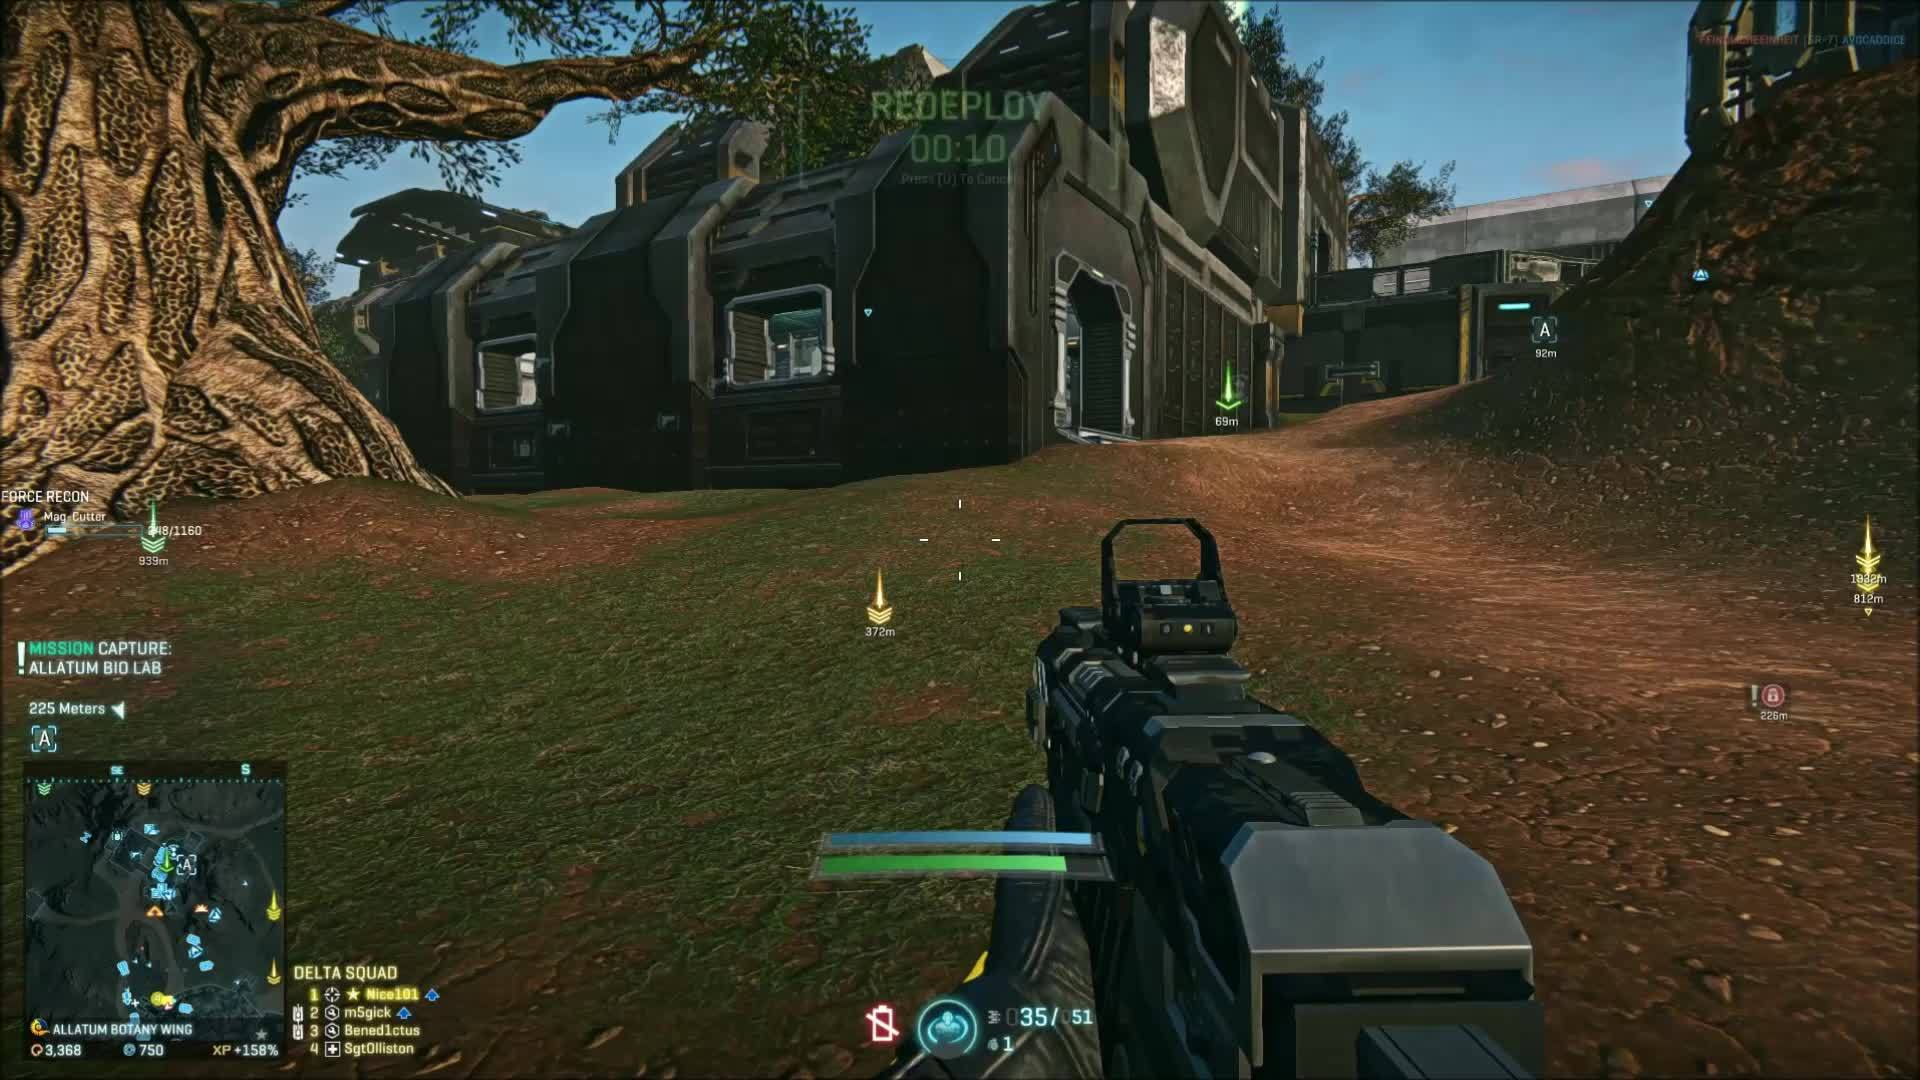 planetside, ps2cobalt, The enemy knows your time is up GIFs